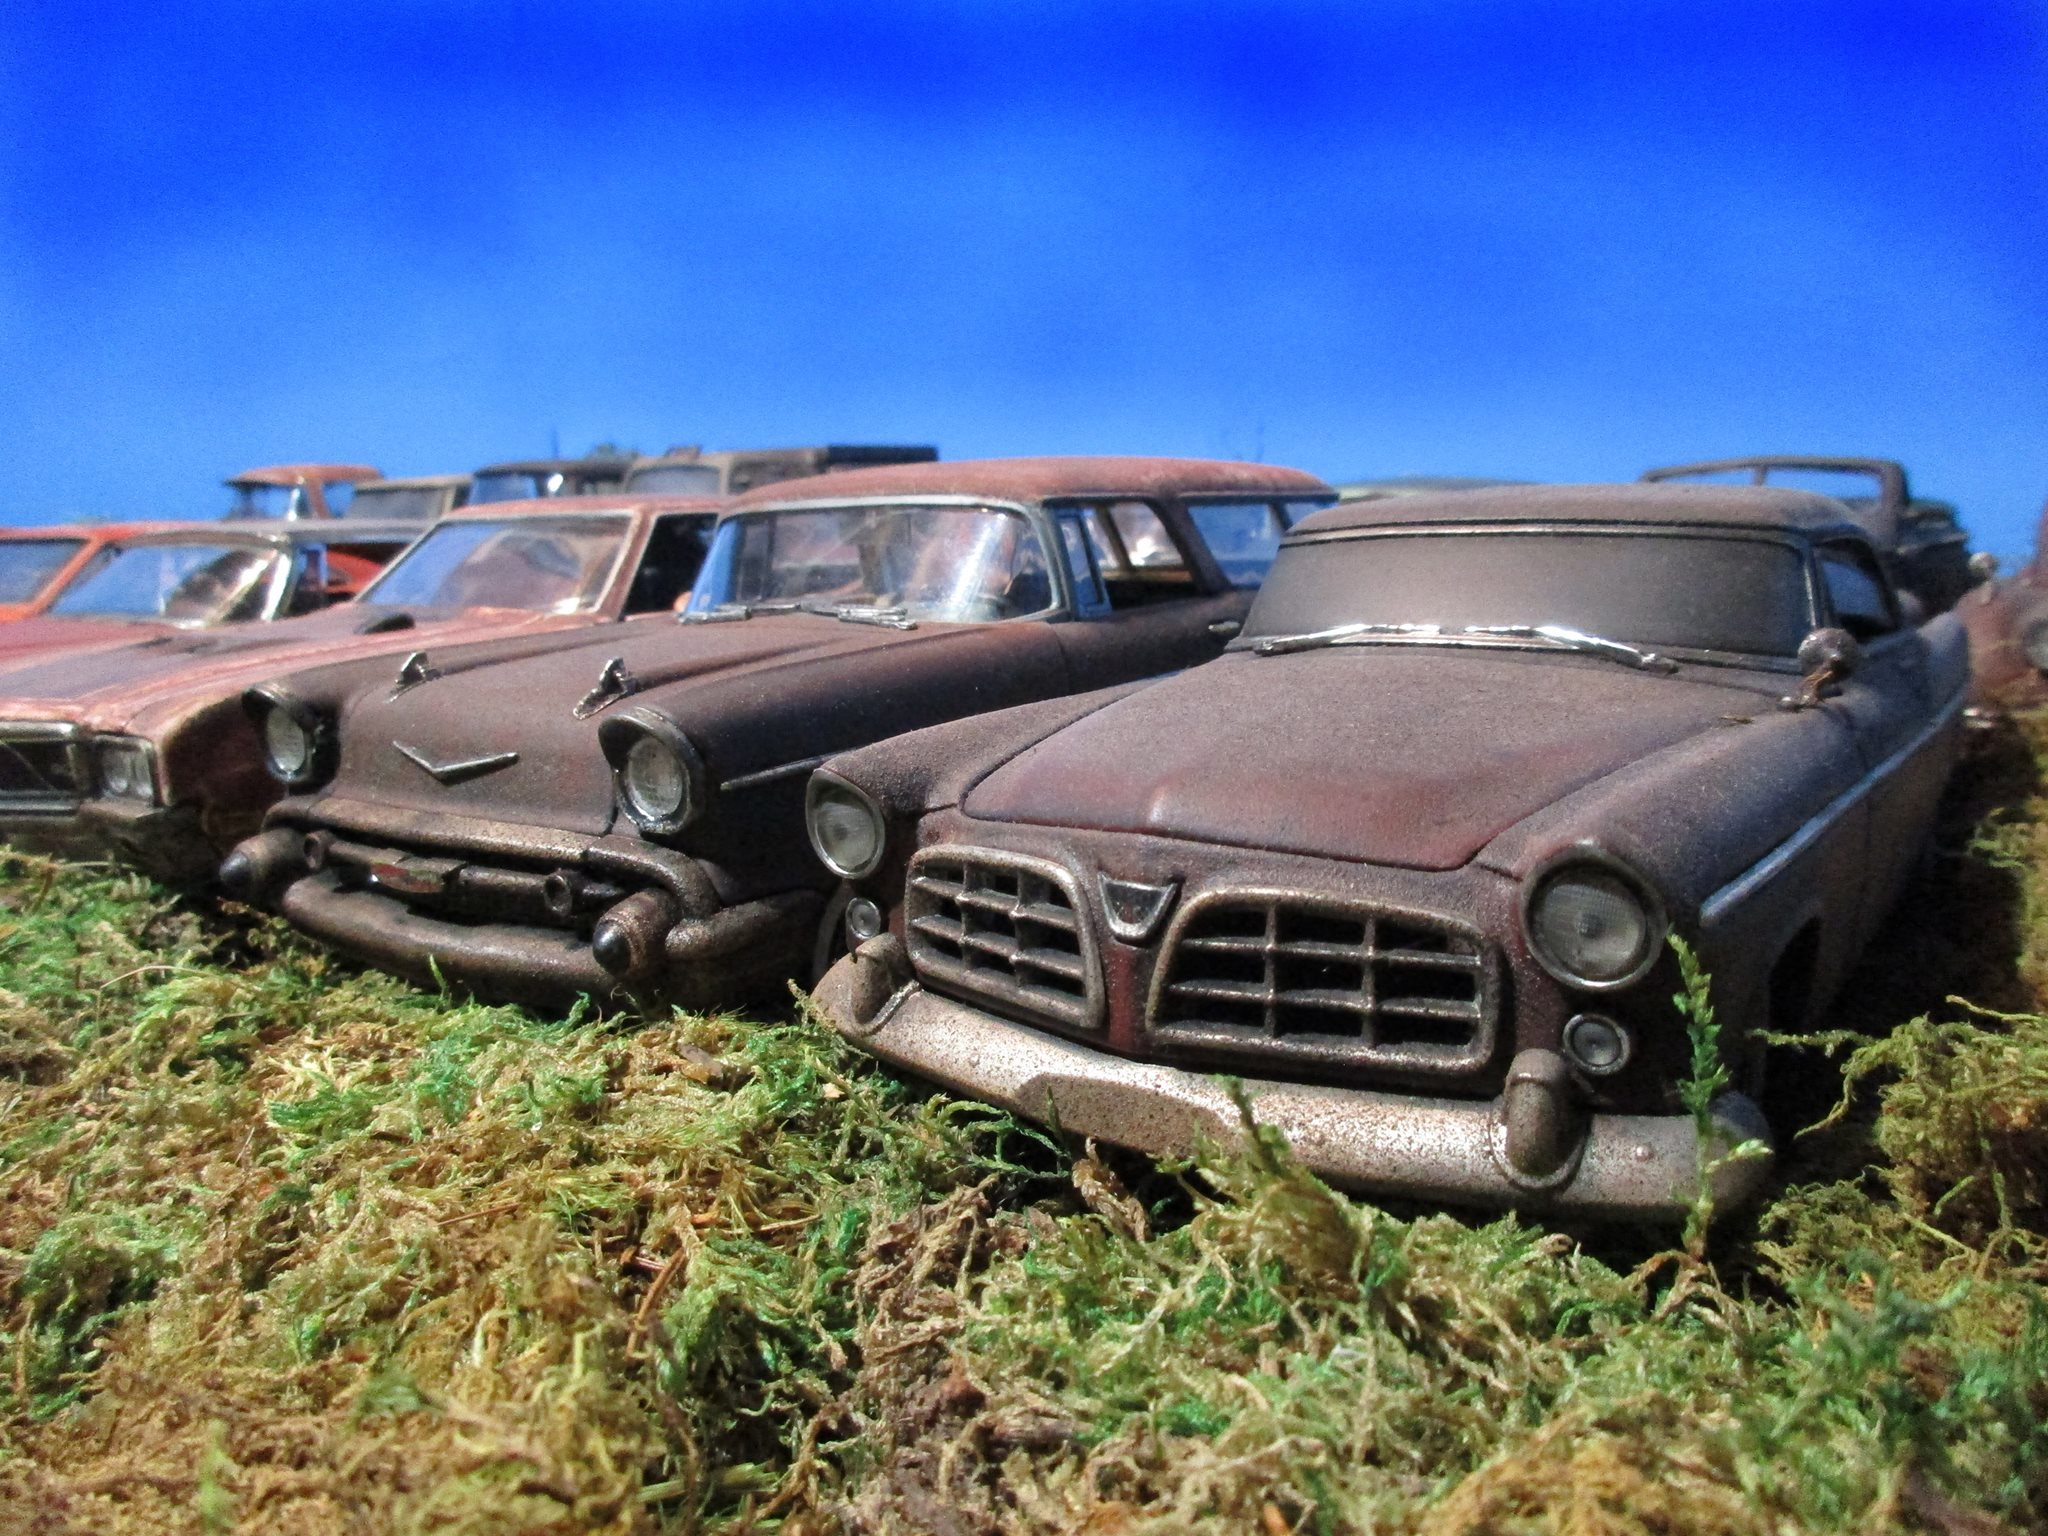 Toasted---Autos-Weathered-Die-Cast-Cars-4